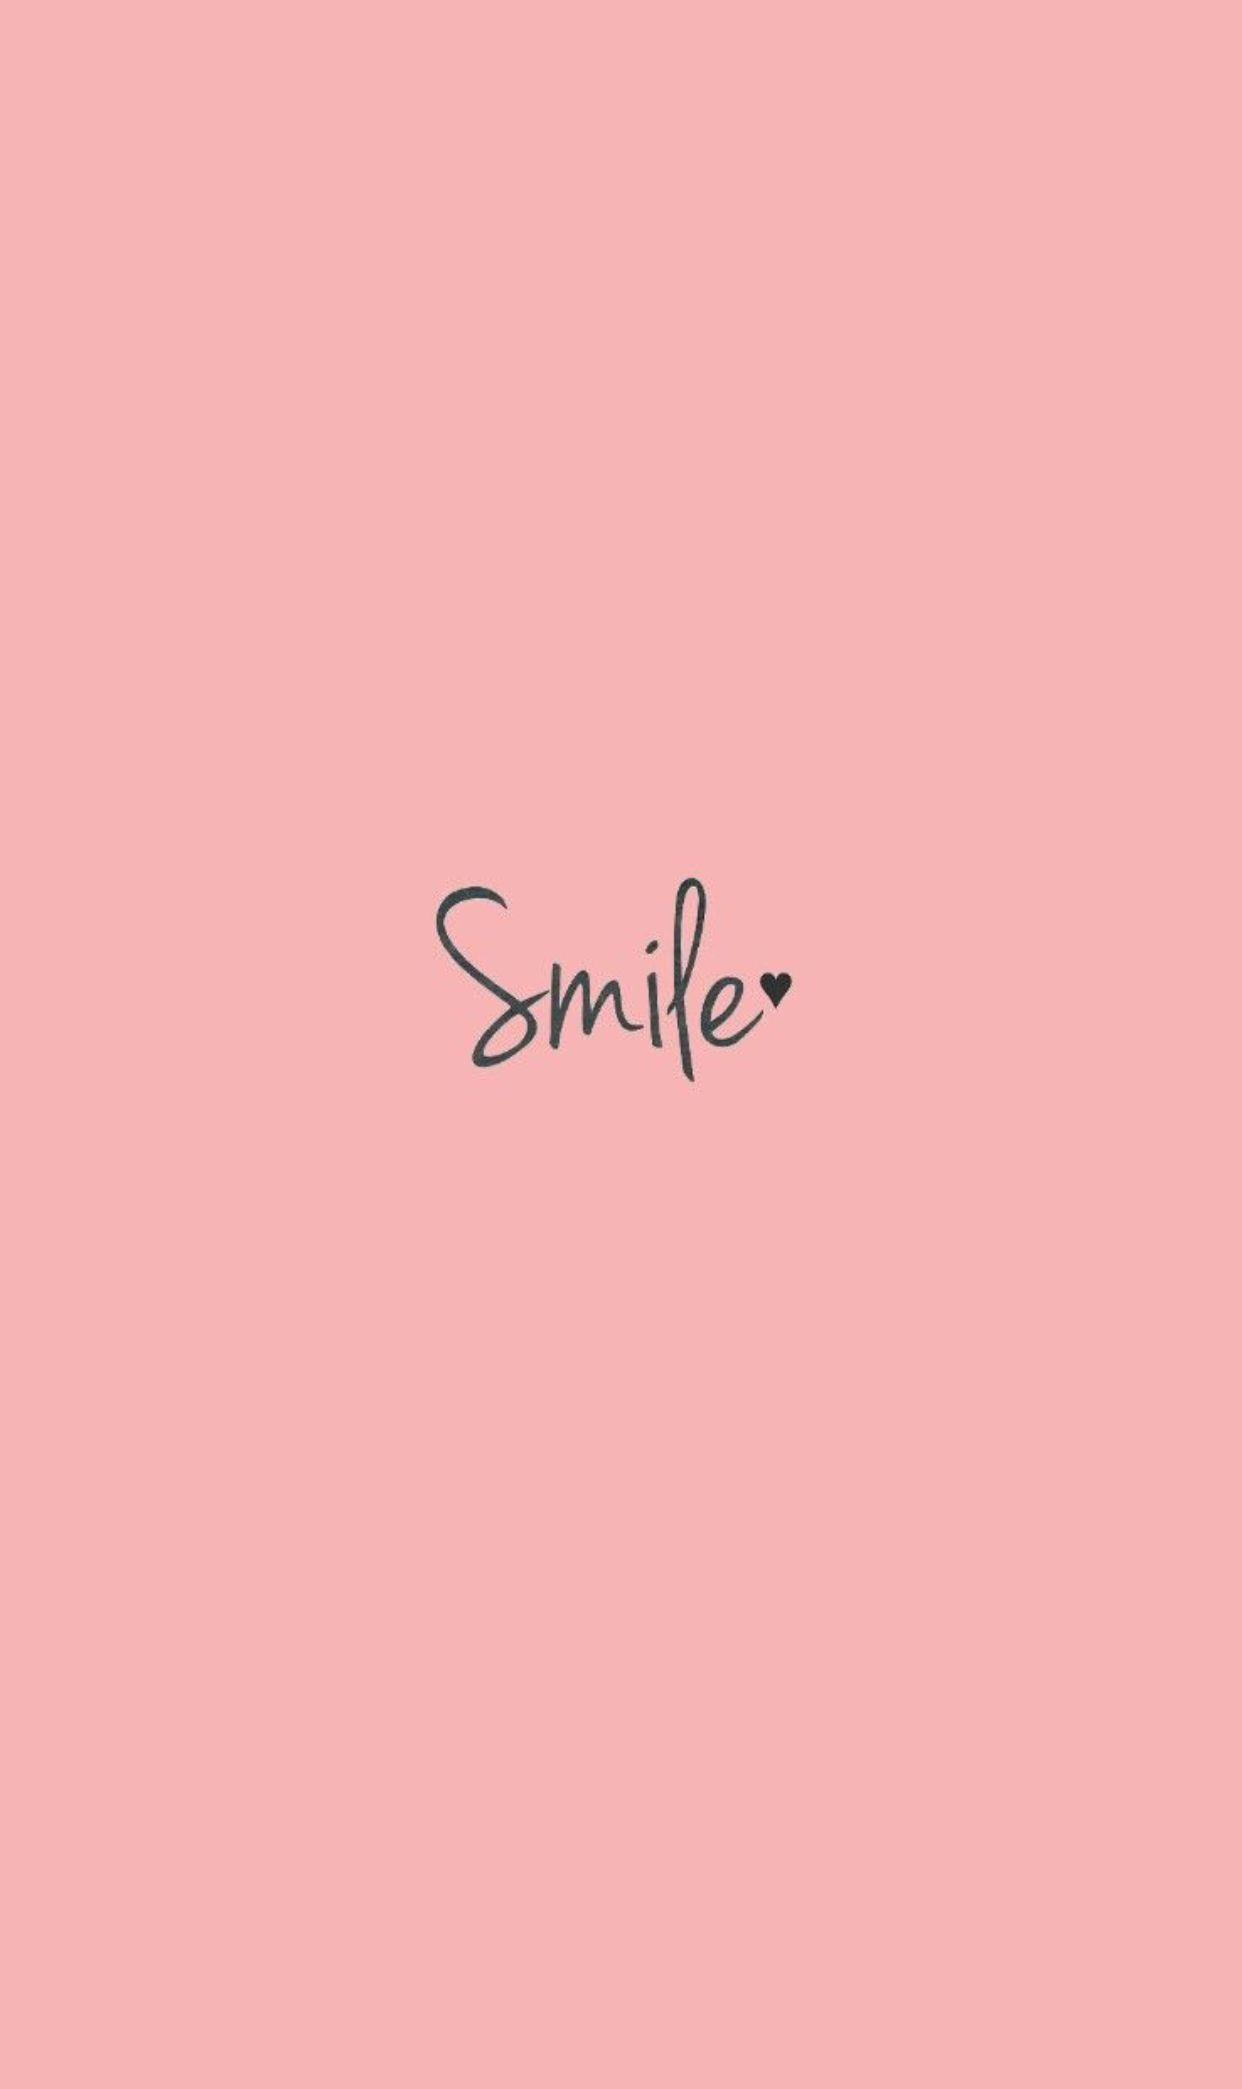 Pin By Trisalmadesti On Quotes Apple Watch Wallpaper Wallpaper Quotes Cute Wallpapers Quotes